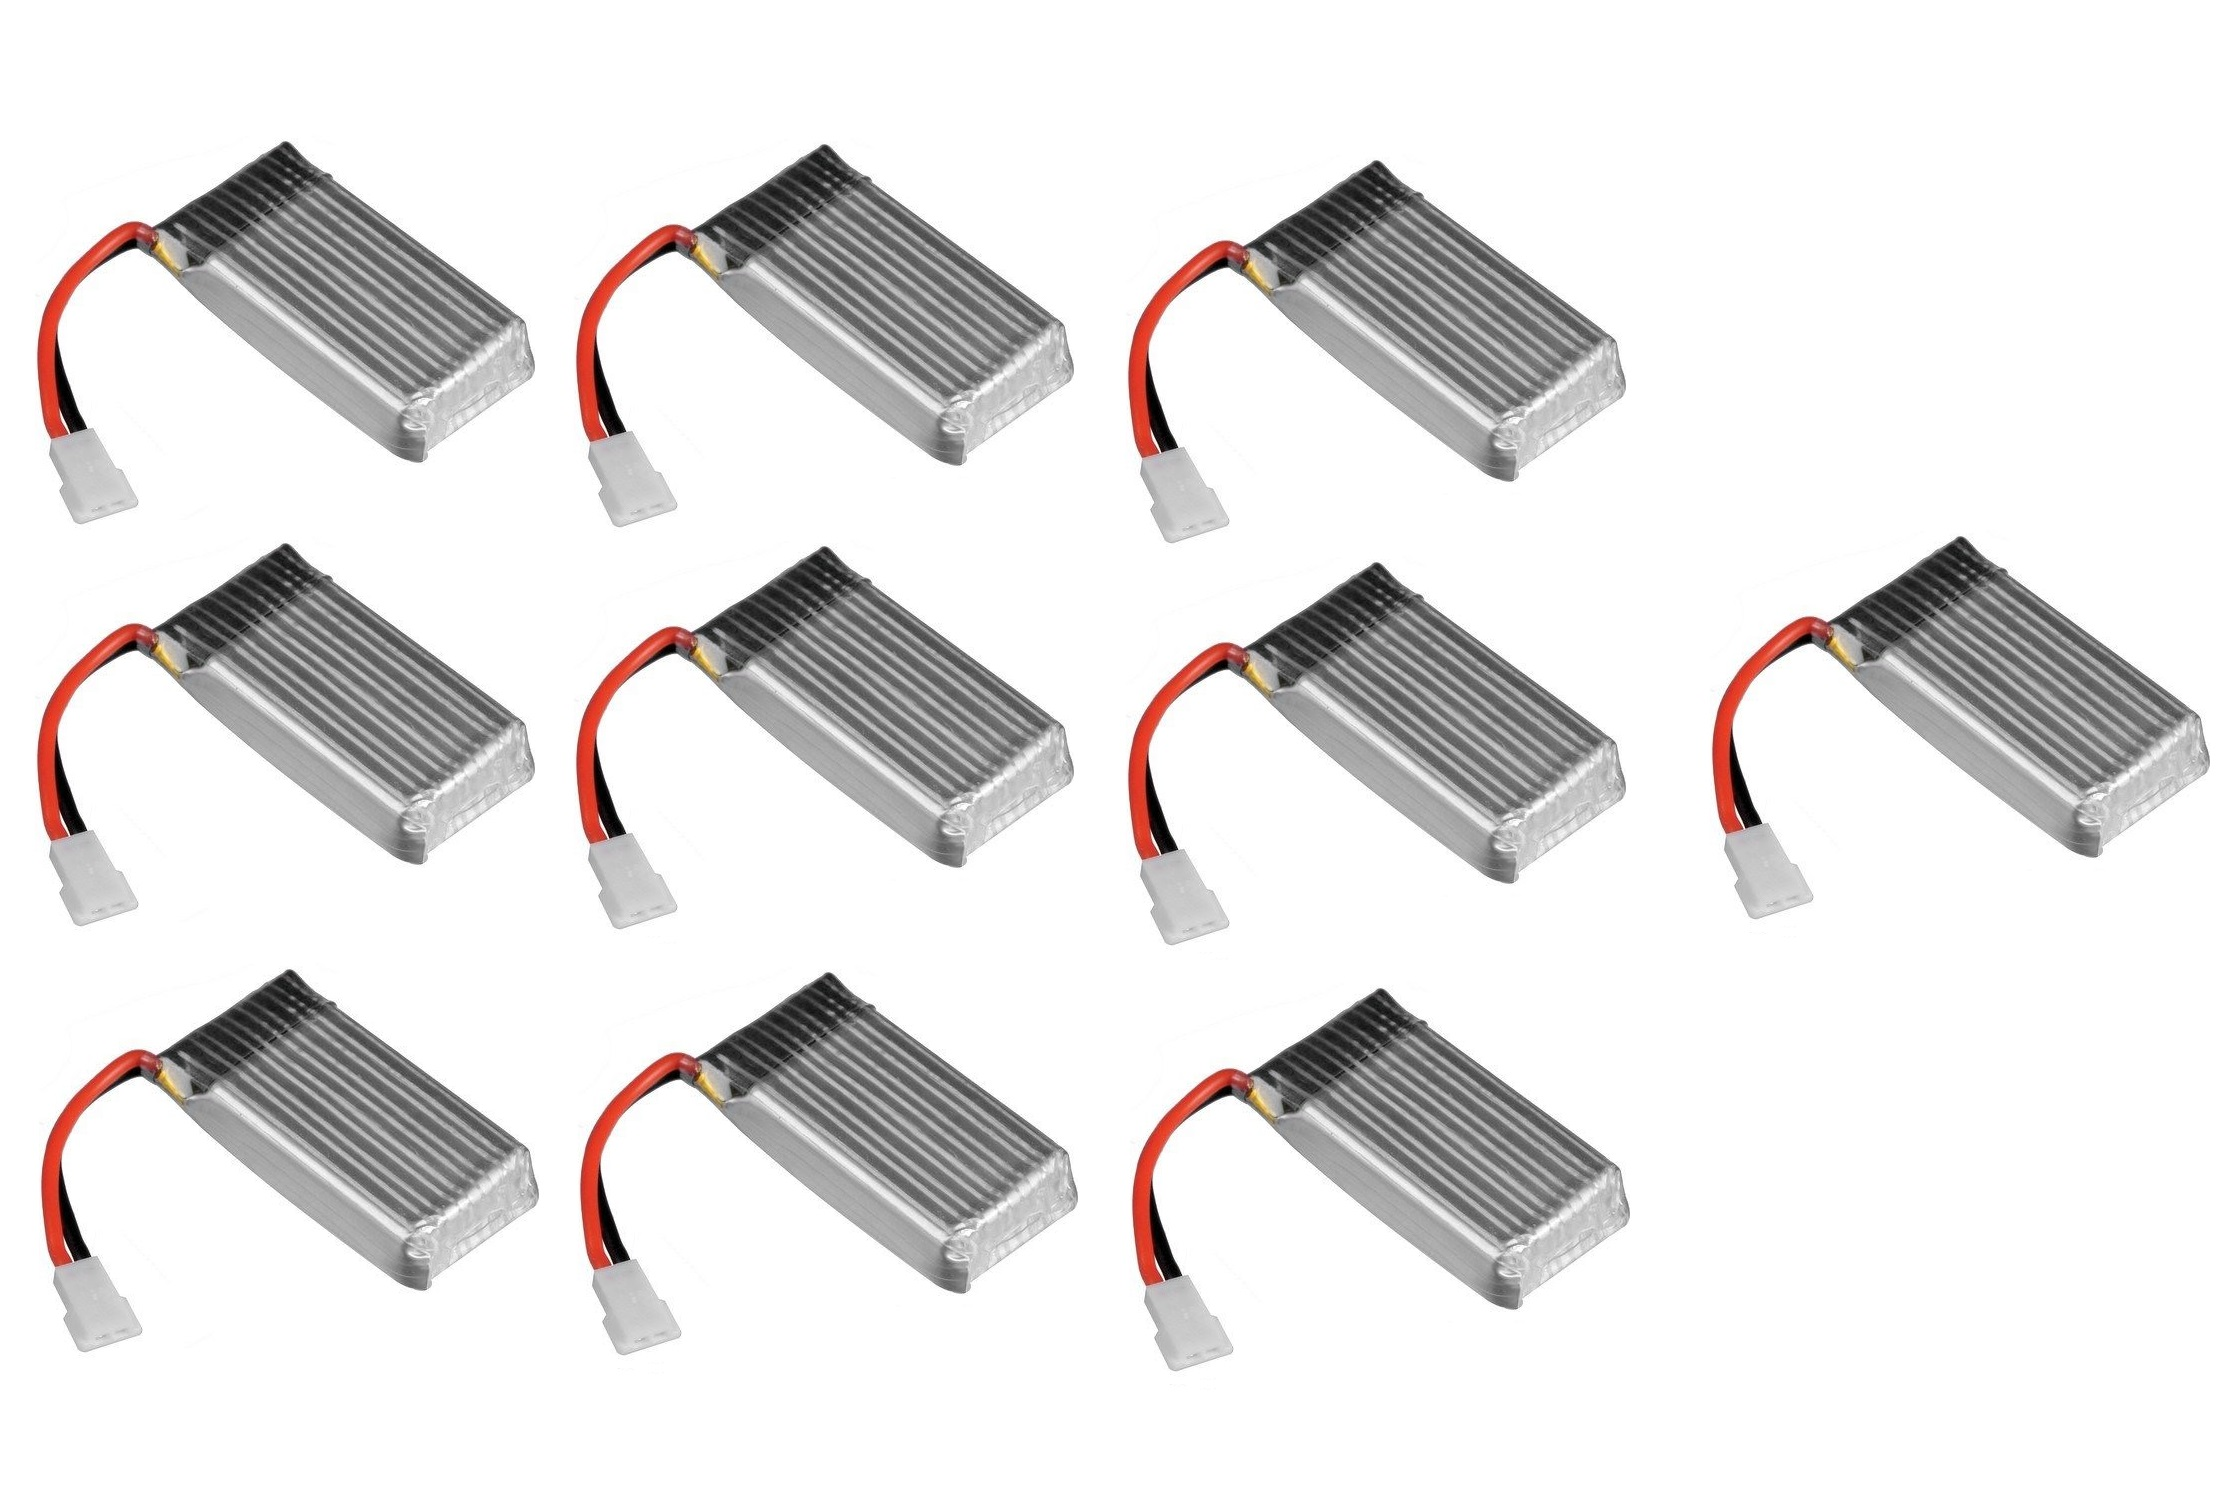 10 X Quantity Of X Drone Nano H107r Battery 3 7v 380mah